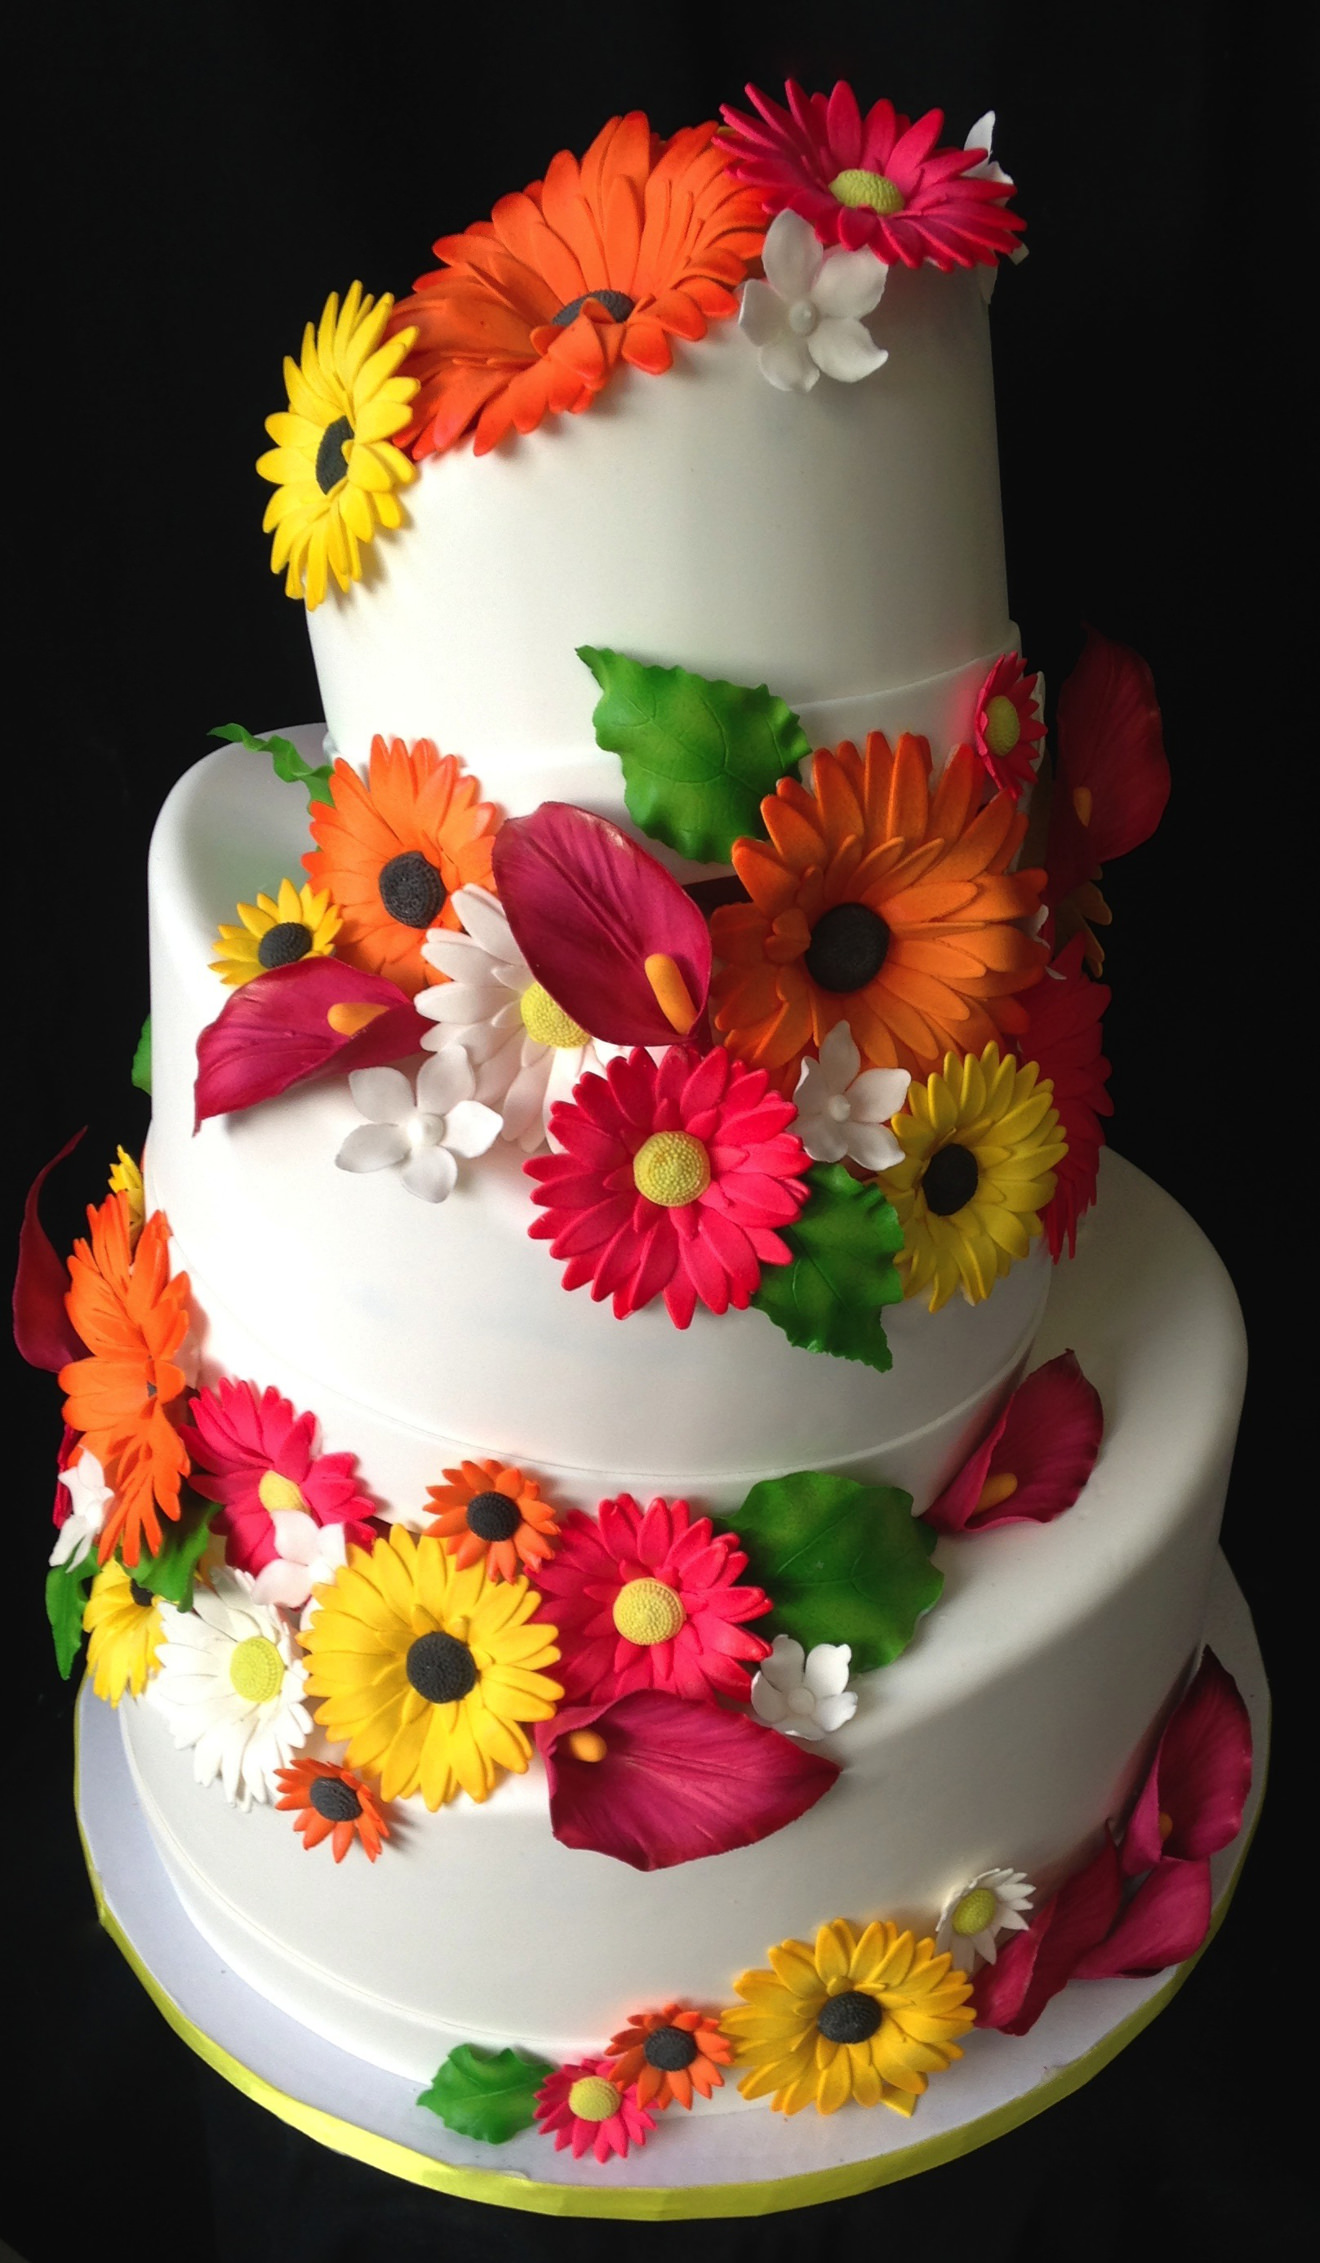 Wedding Cake with Colorful Handmade Daisies